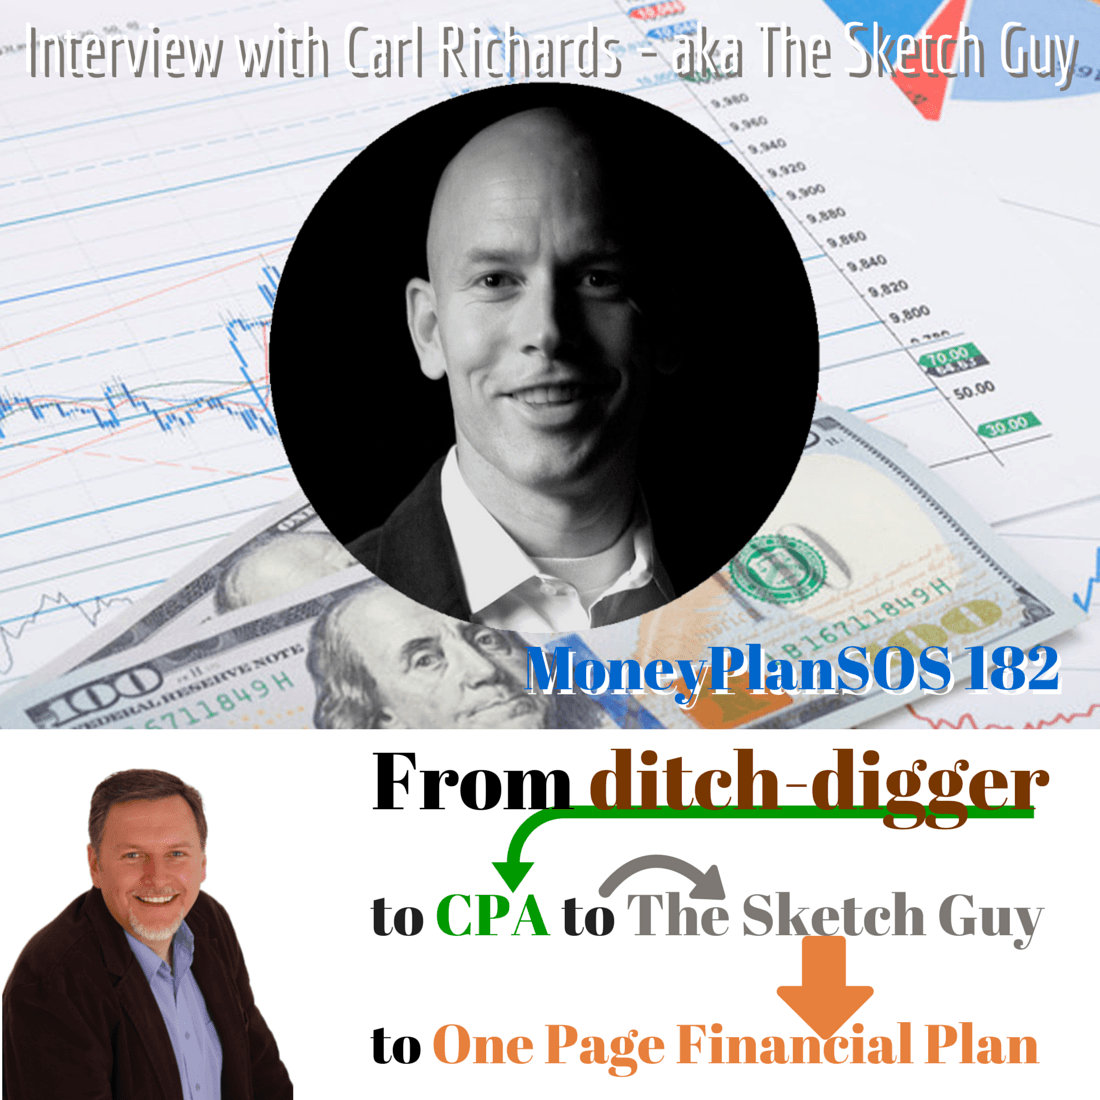 One Page Financial Plans and Cocktail Napkins - Interview with Carl Richards